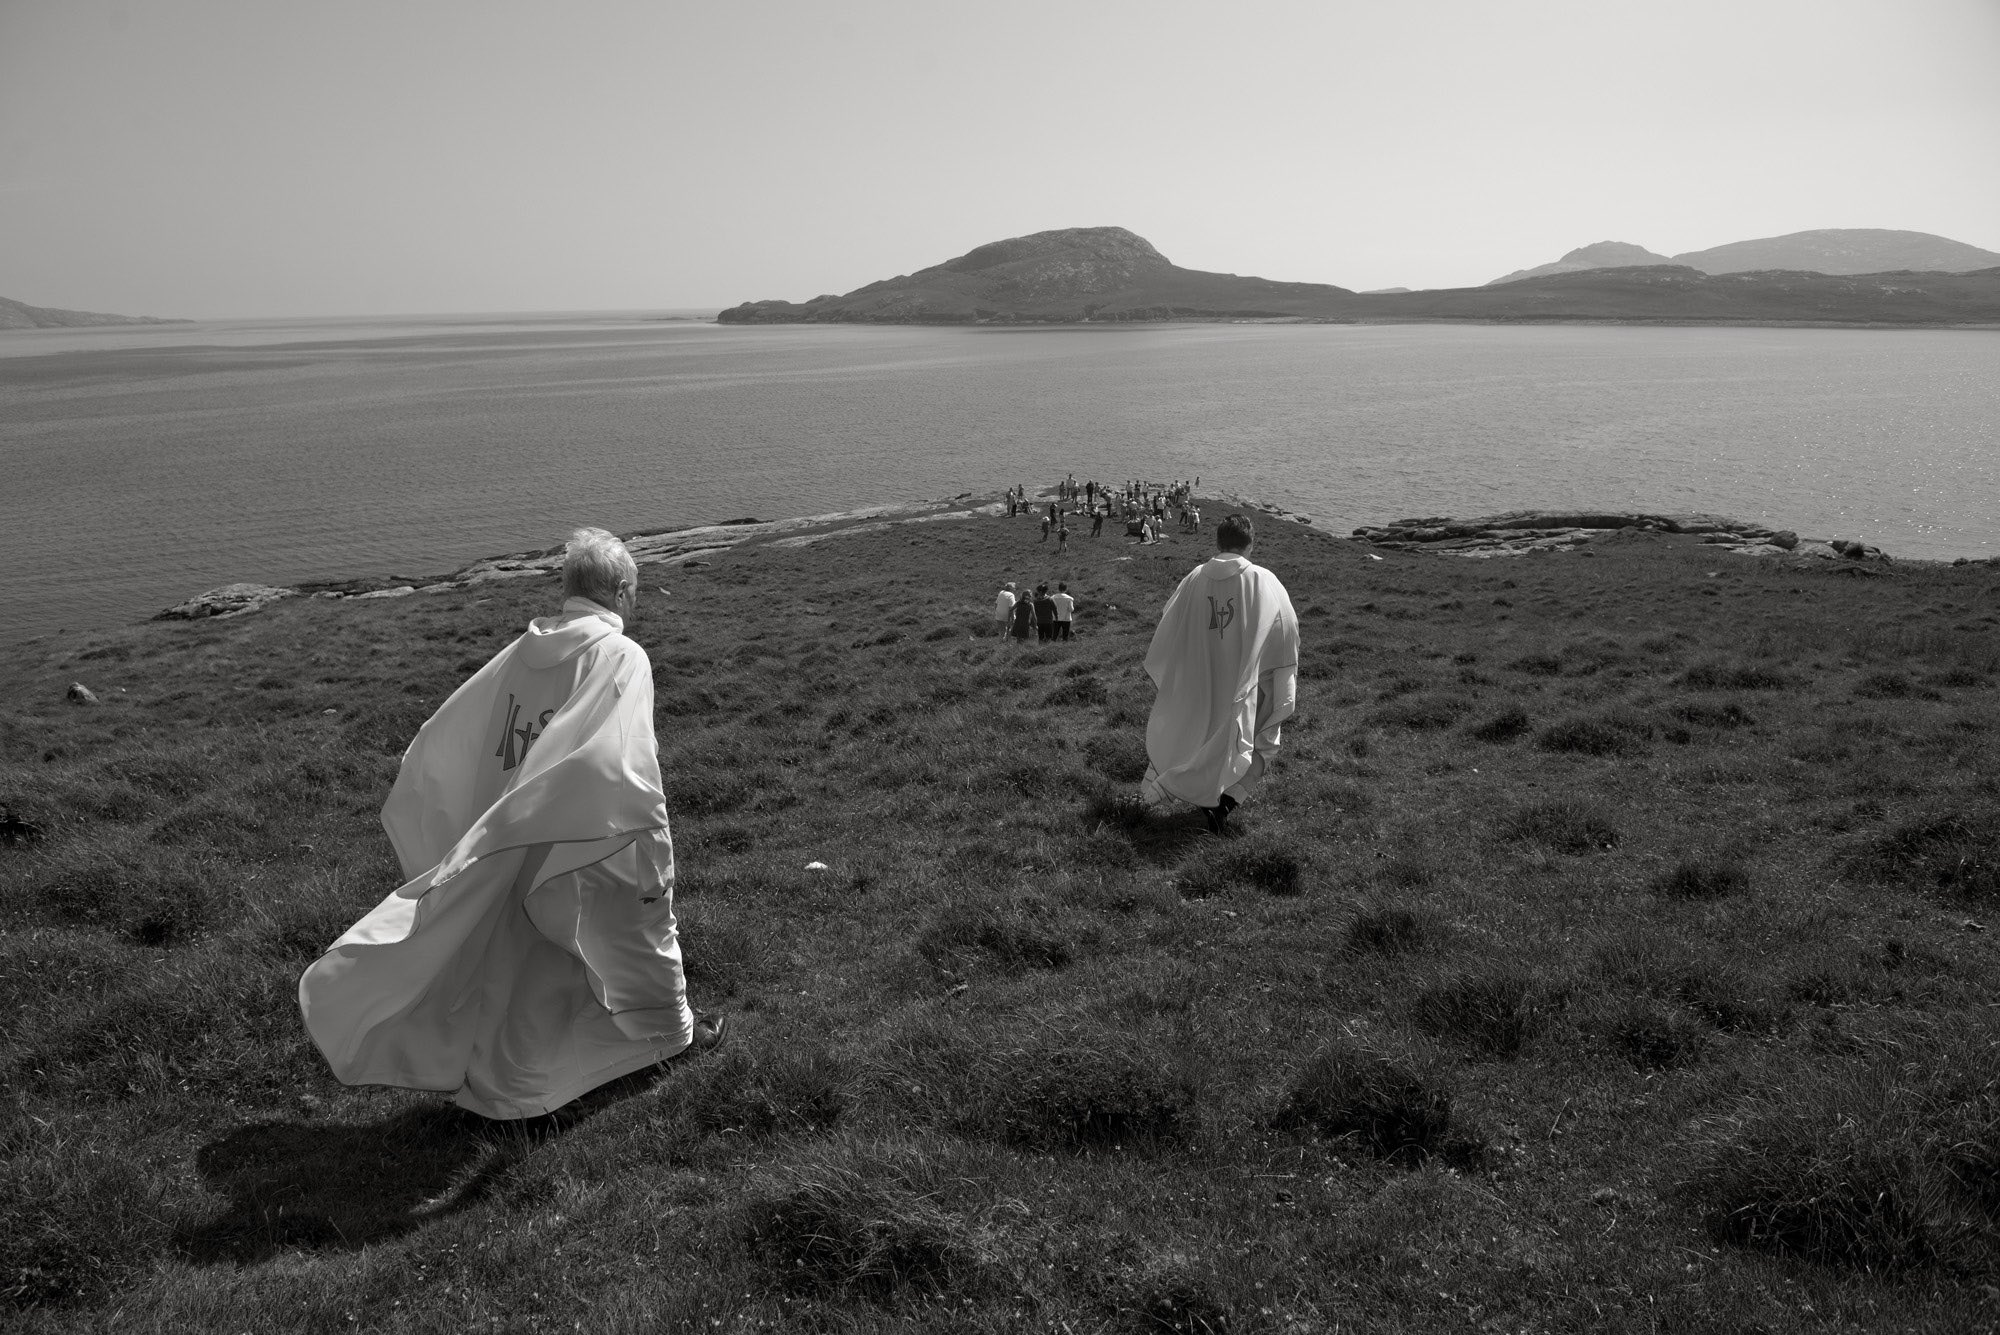 Church Centenary, 2013 from The Vatersay Series